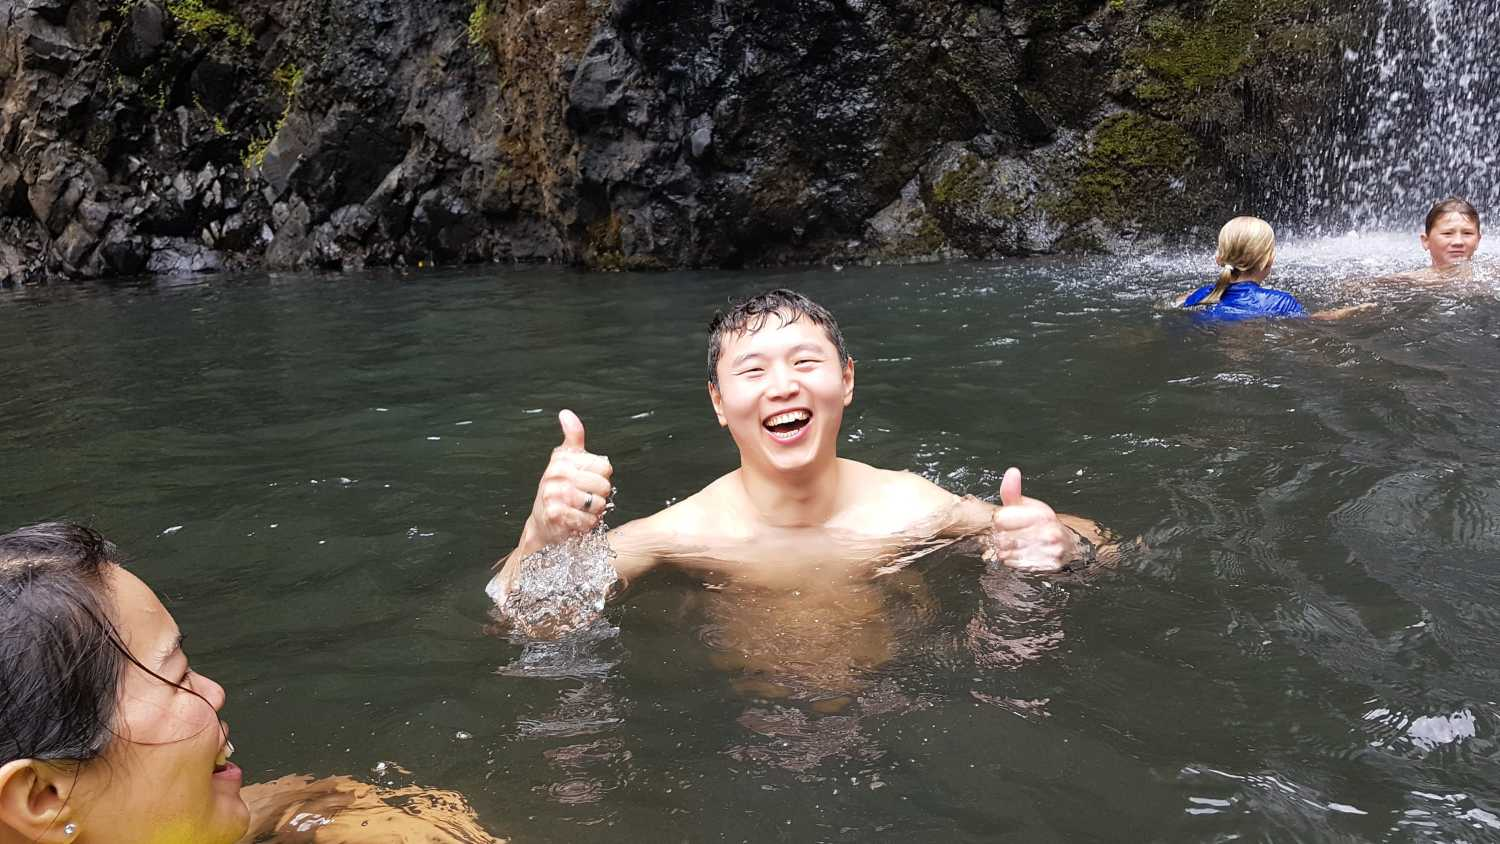 Happy times at Kitekite Falls